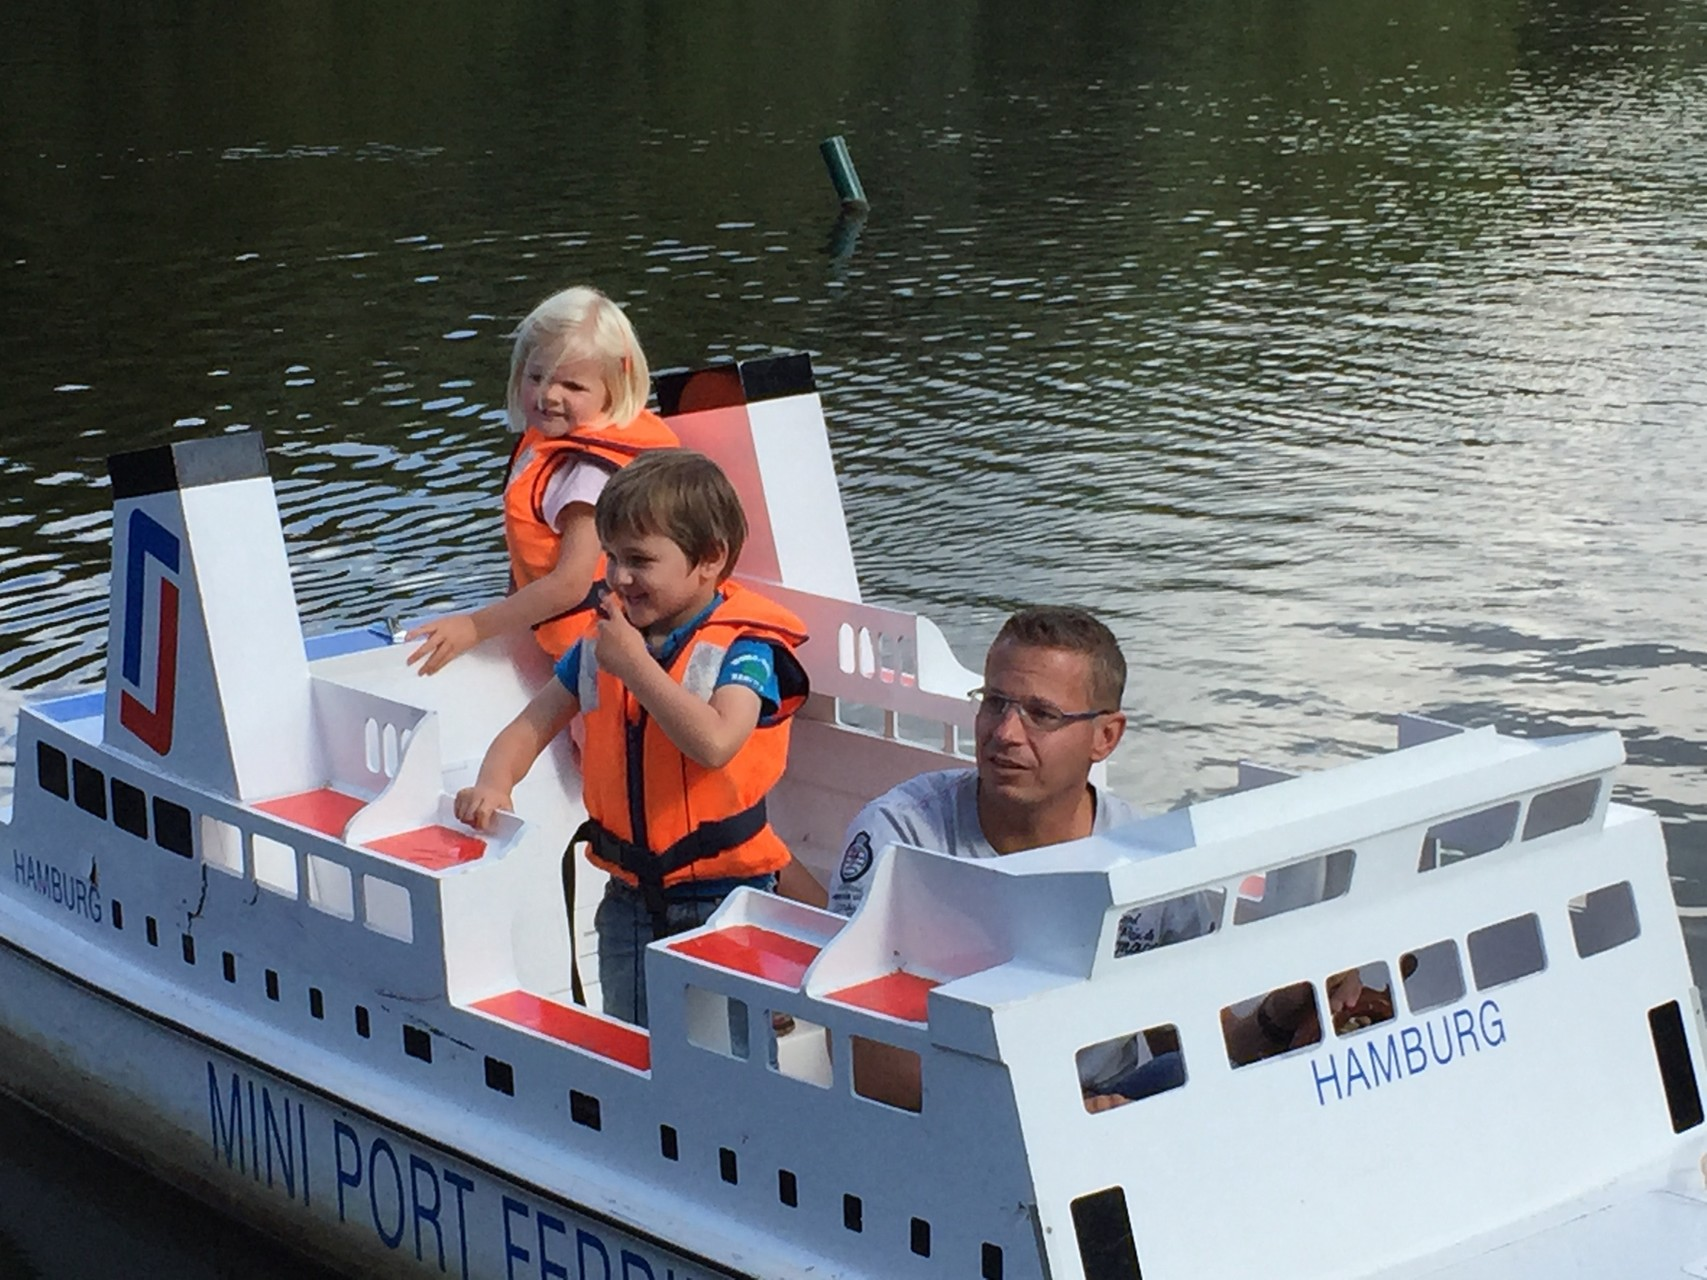 Varen bij Miniport World